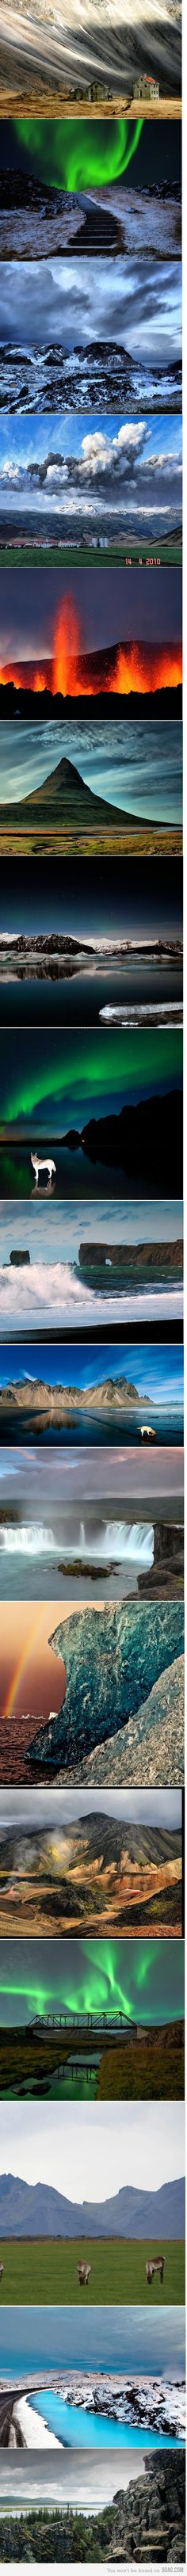 wow iceland!